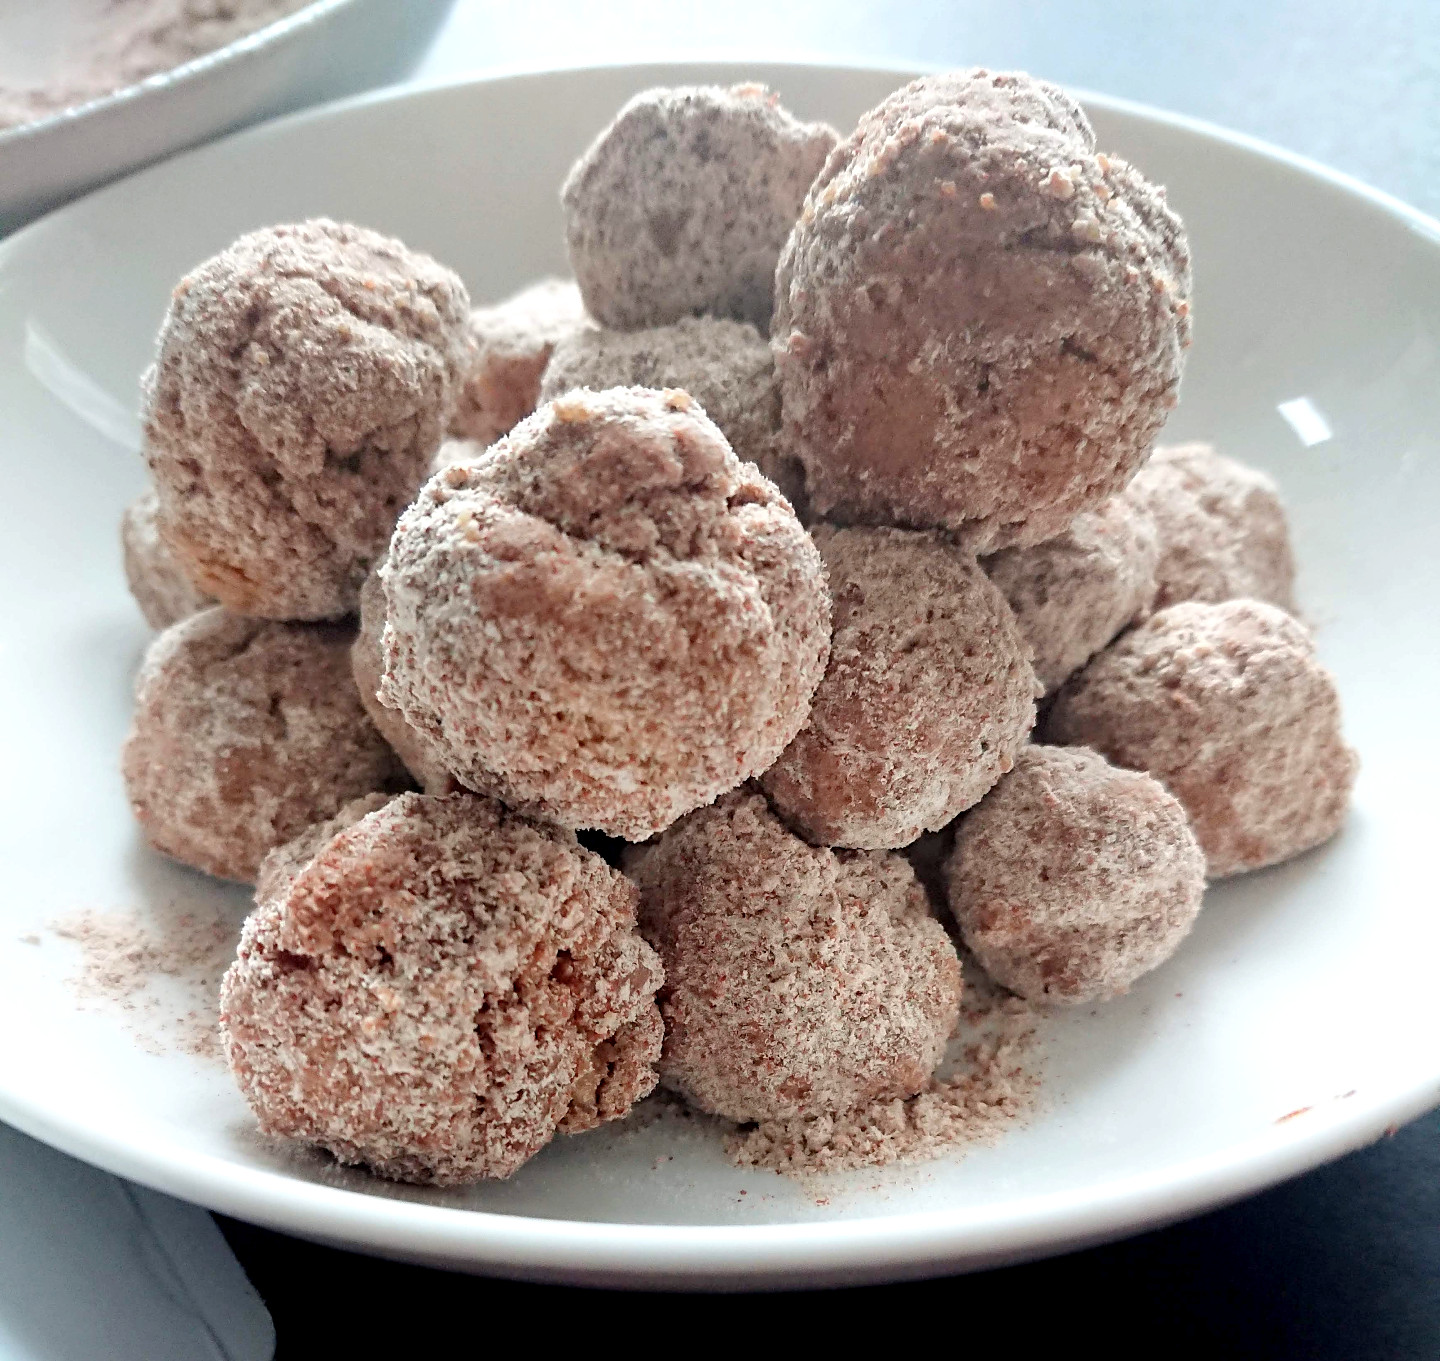 Gluten Free, Dairy Free & Egg Free Baked Churro Balls with Soulbee Honey